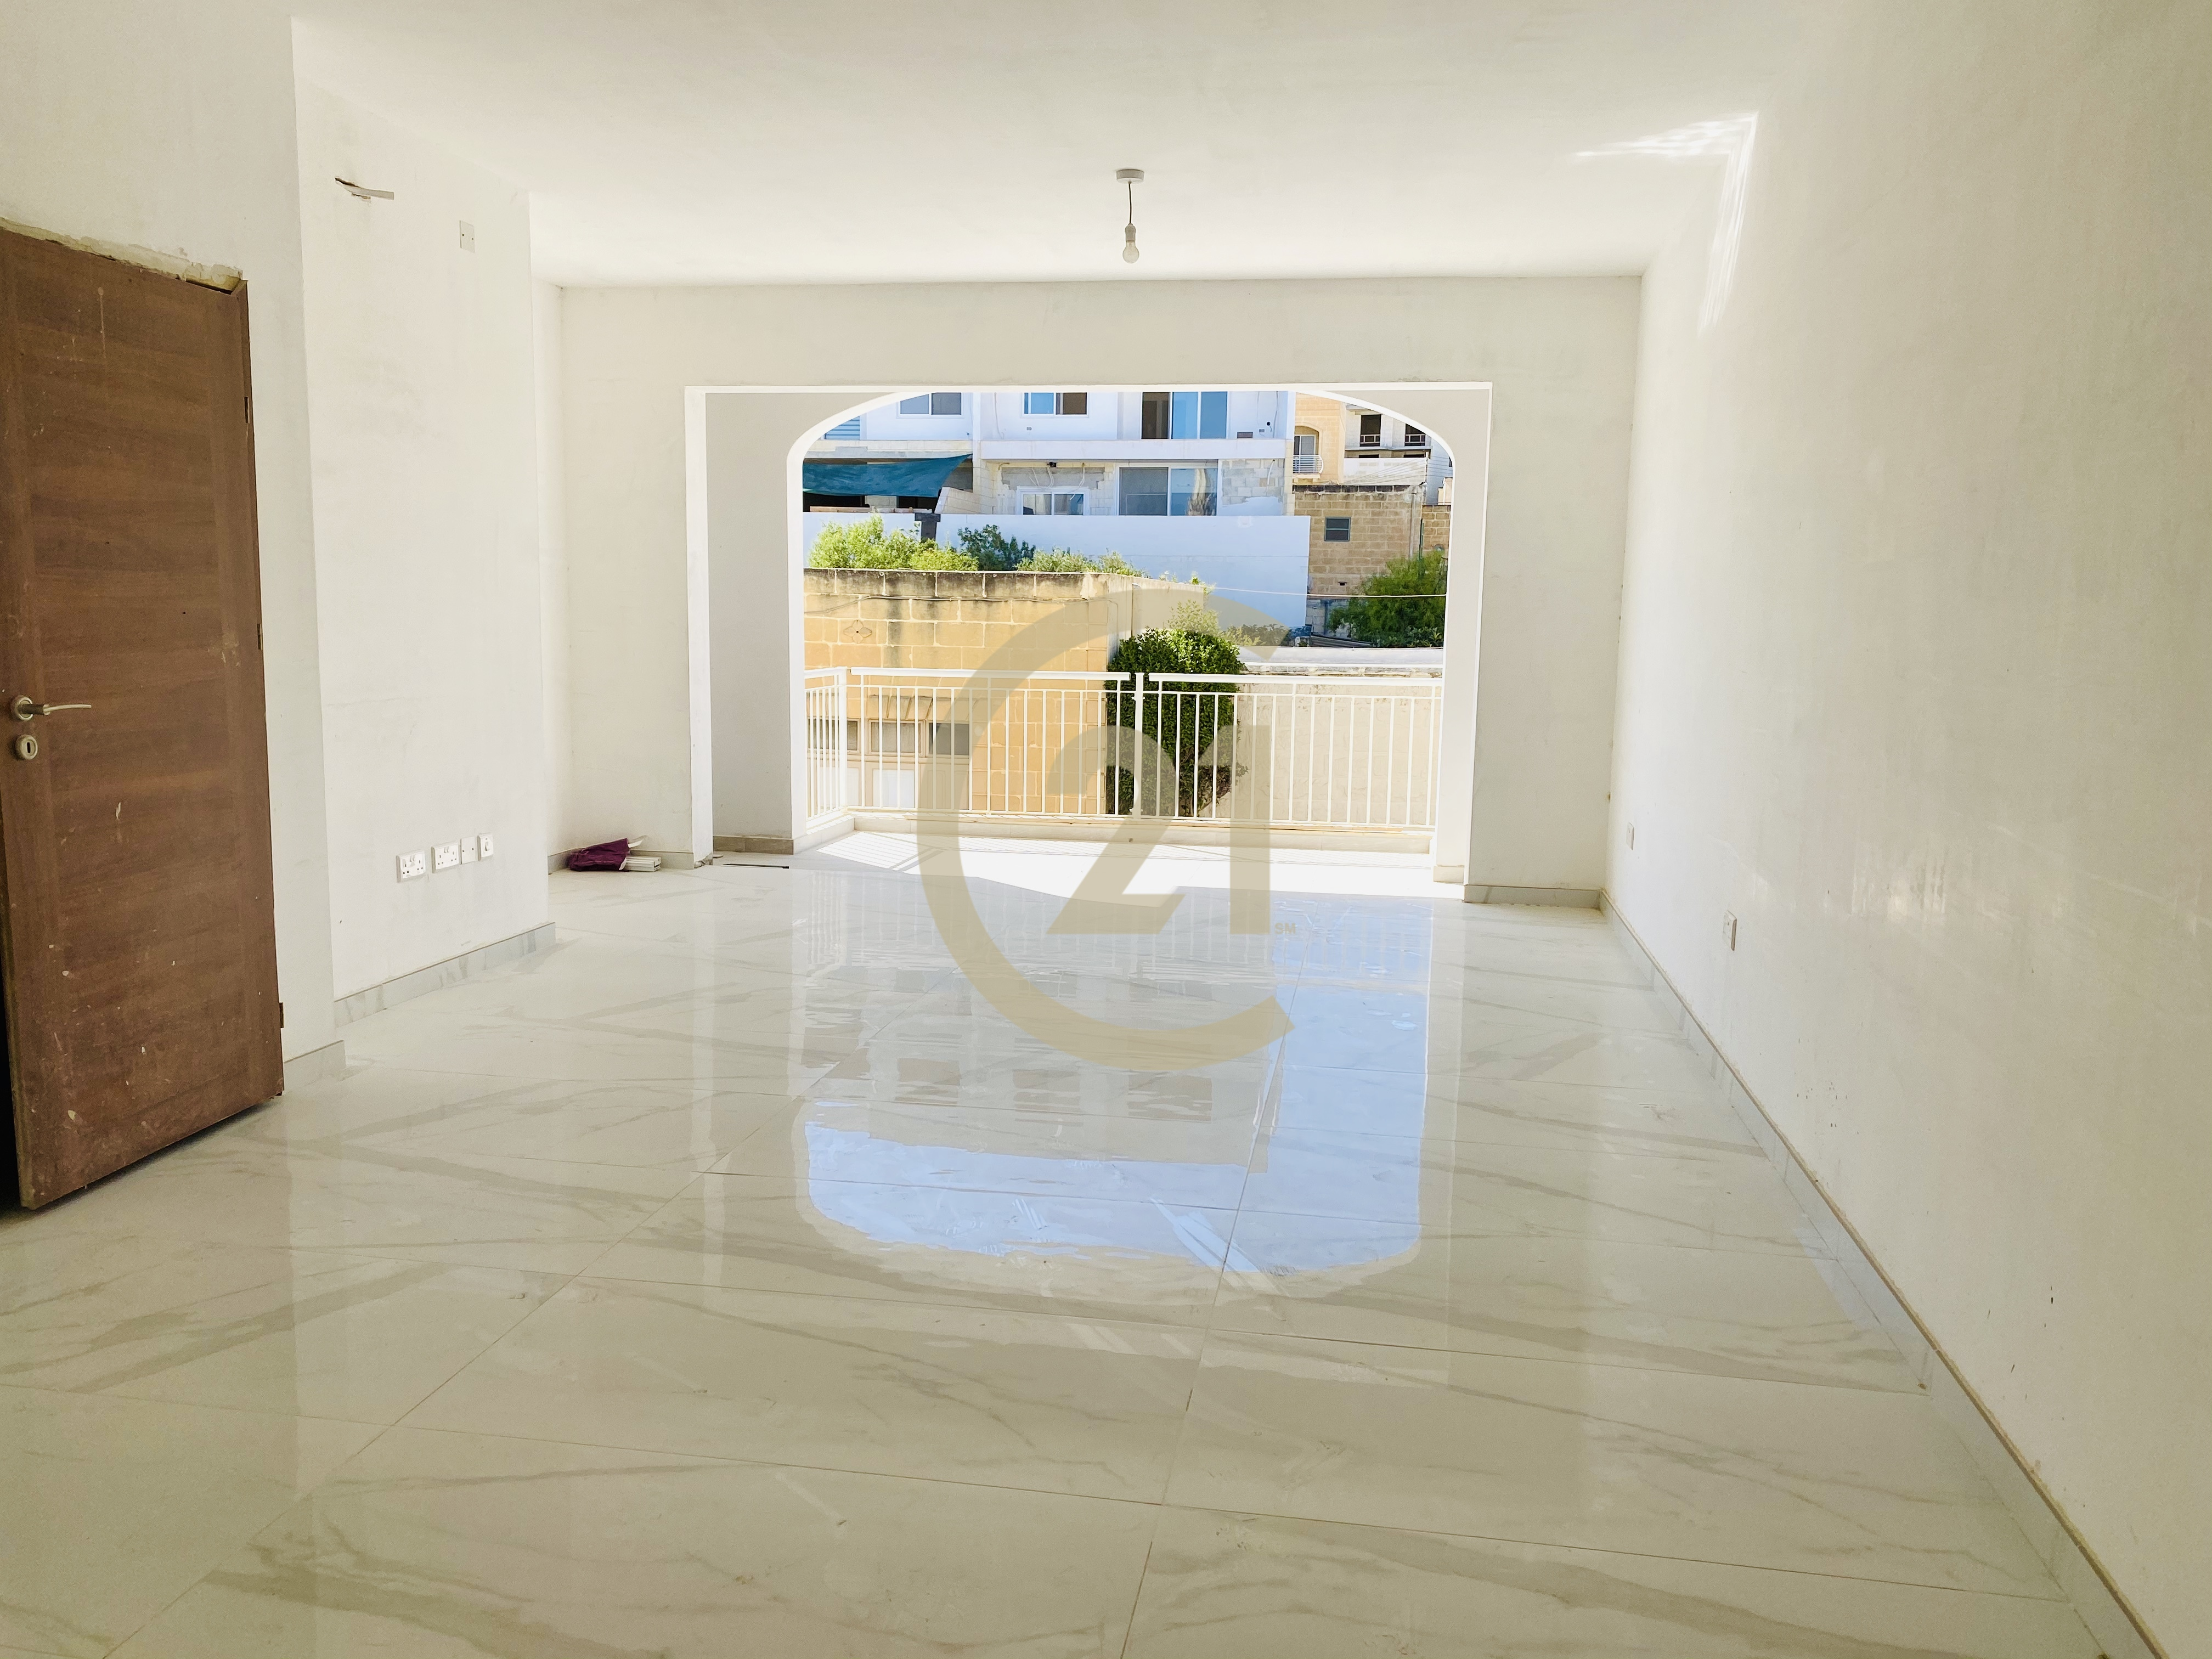 Finished Three Bedroom Apartment For Sale in Ghajnsielem